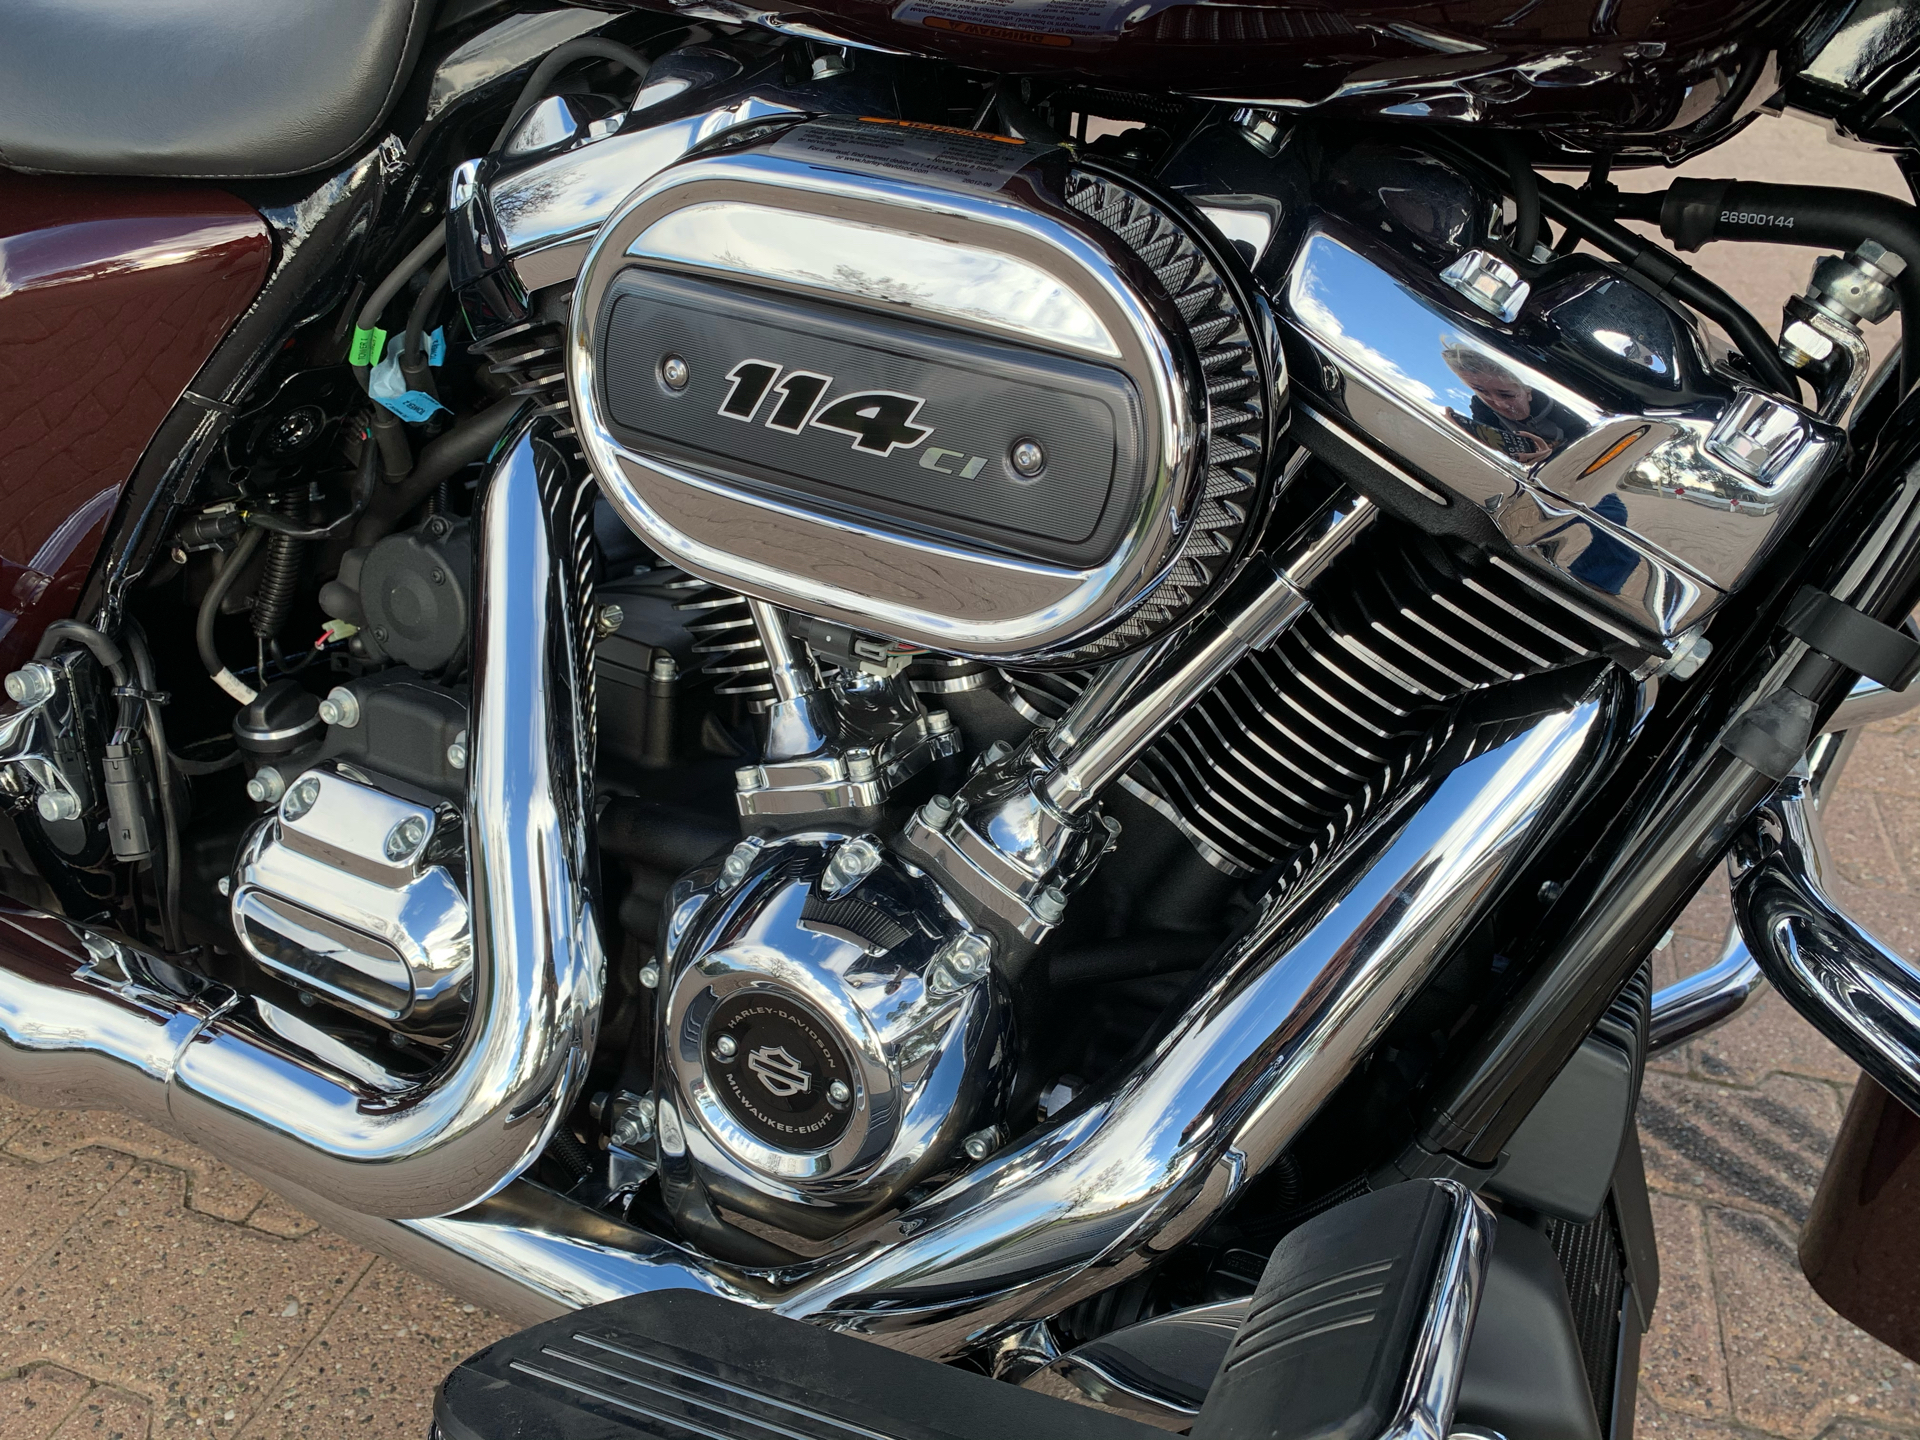 2021 Harley-Davidson Road Glide® Special in Vacaville, California - Photo 6